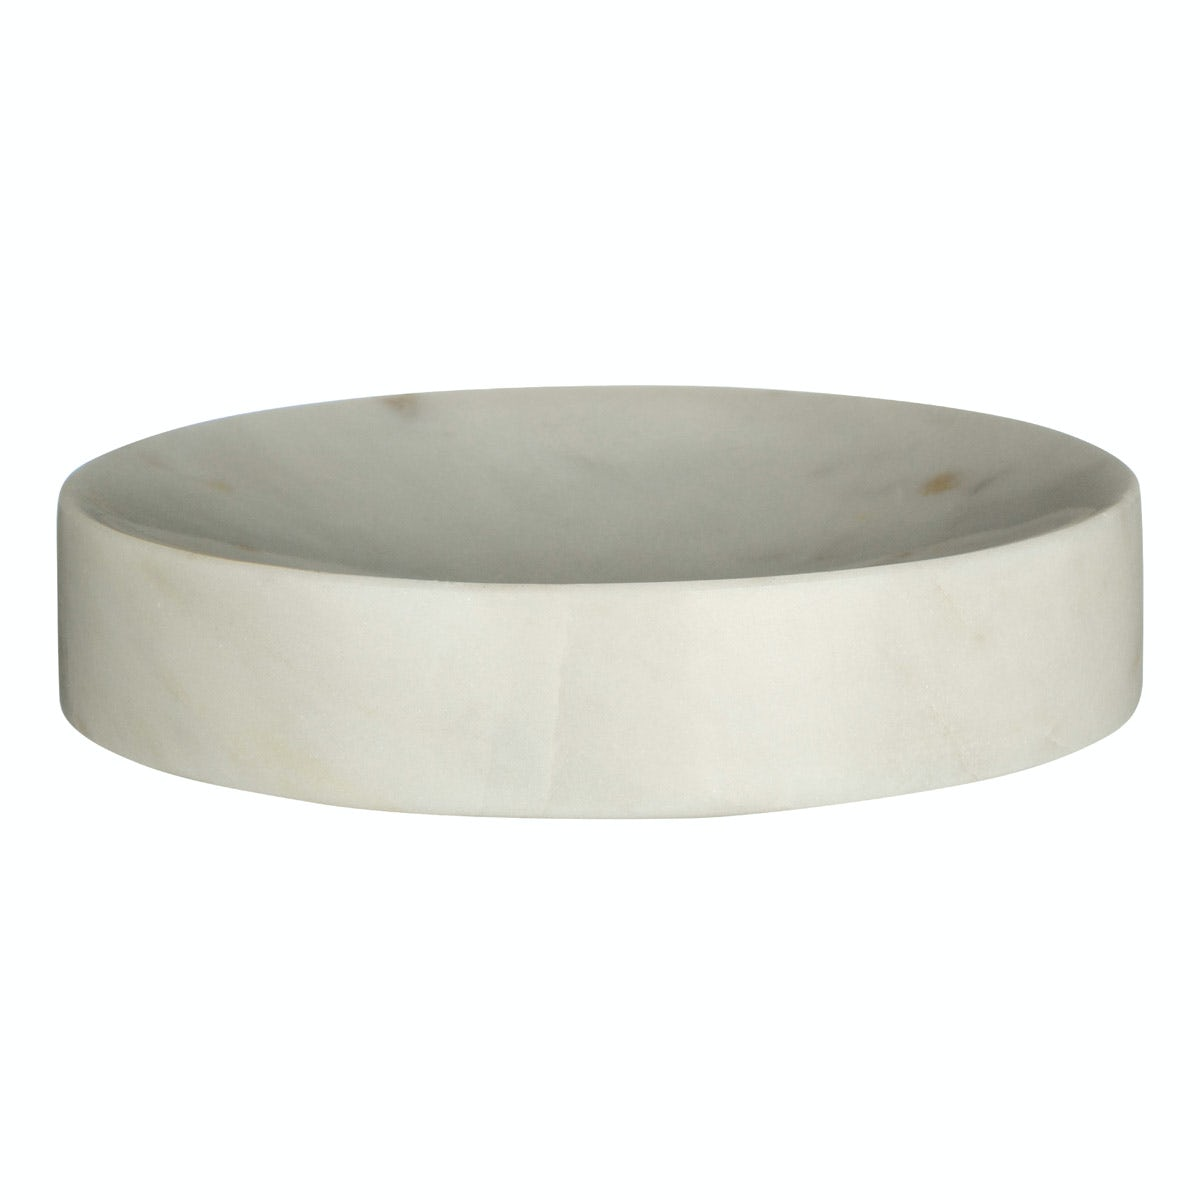 Mode White marble soap dish